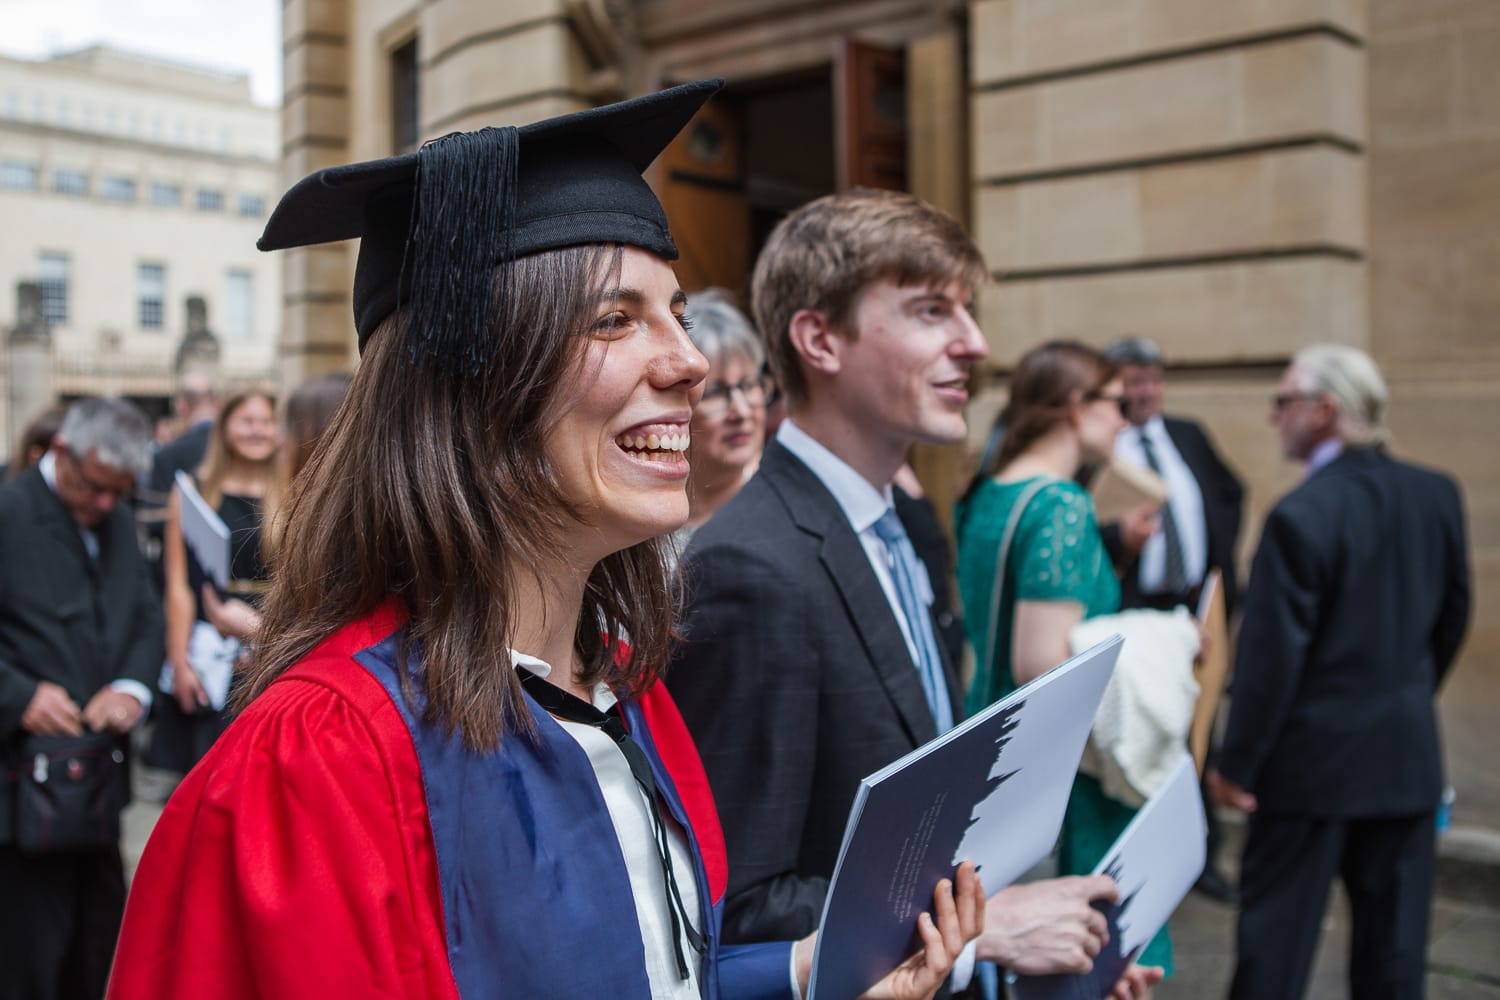 oxford-graduation-photographer-04